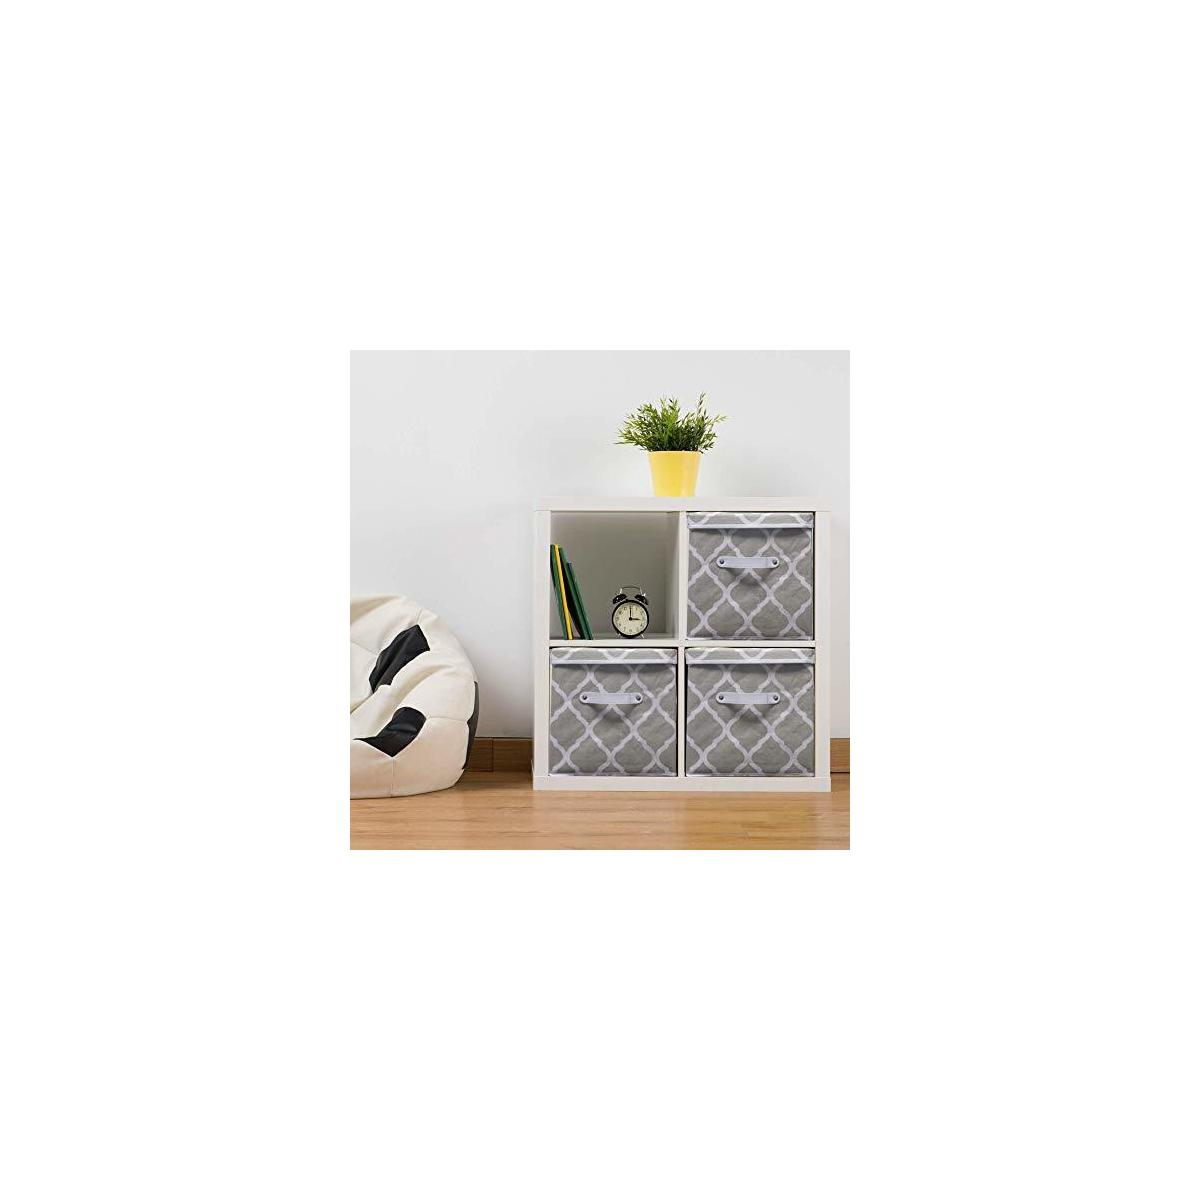 "3 Set Fabric Storage Bins -Removable Lids -Leather Handles -11x11x11"" - Collapsible/Stackable -Sage/White; USES: Storage Cube organizer, Book, Sports Toy box Clothes Baby Basket; Home, Nursery, Office"